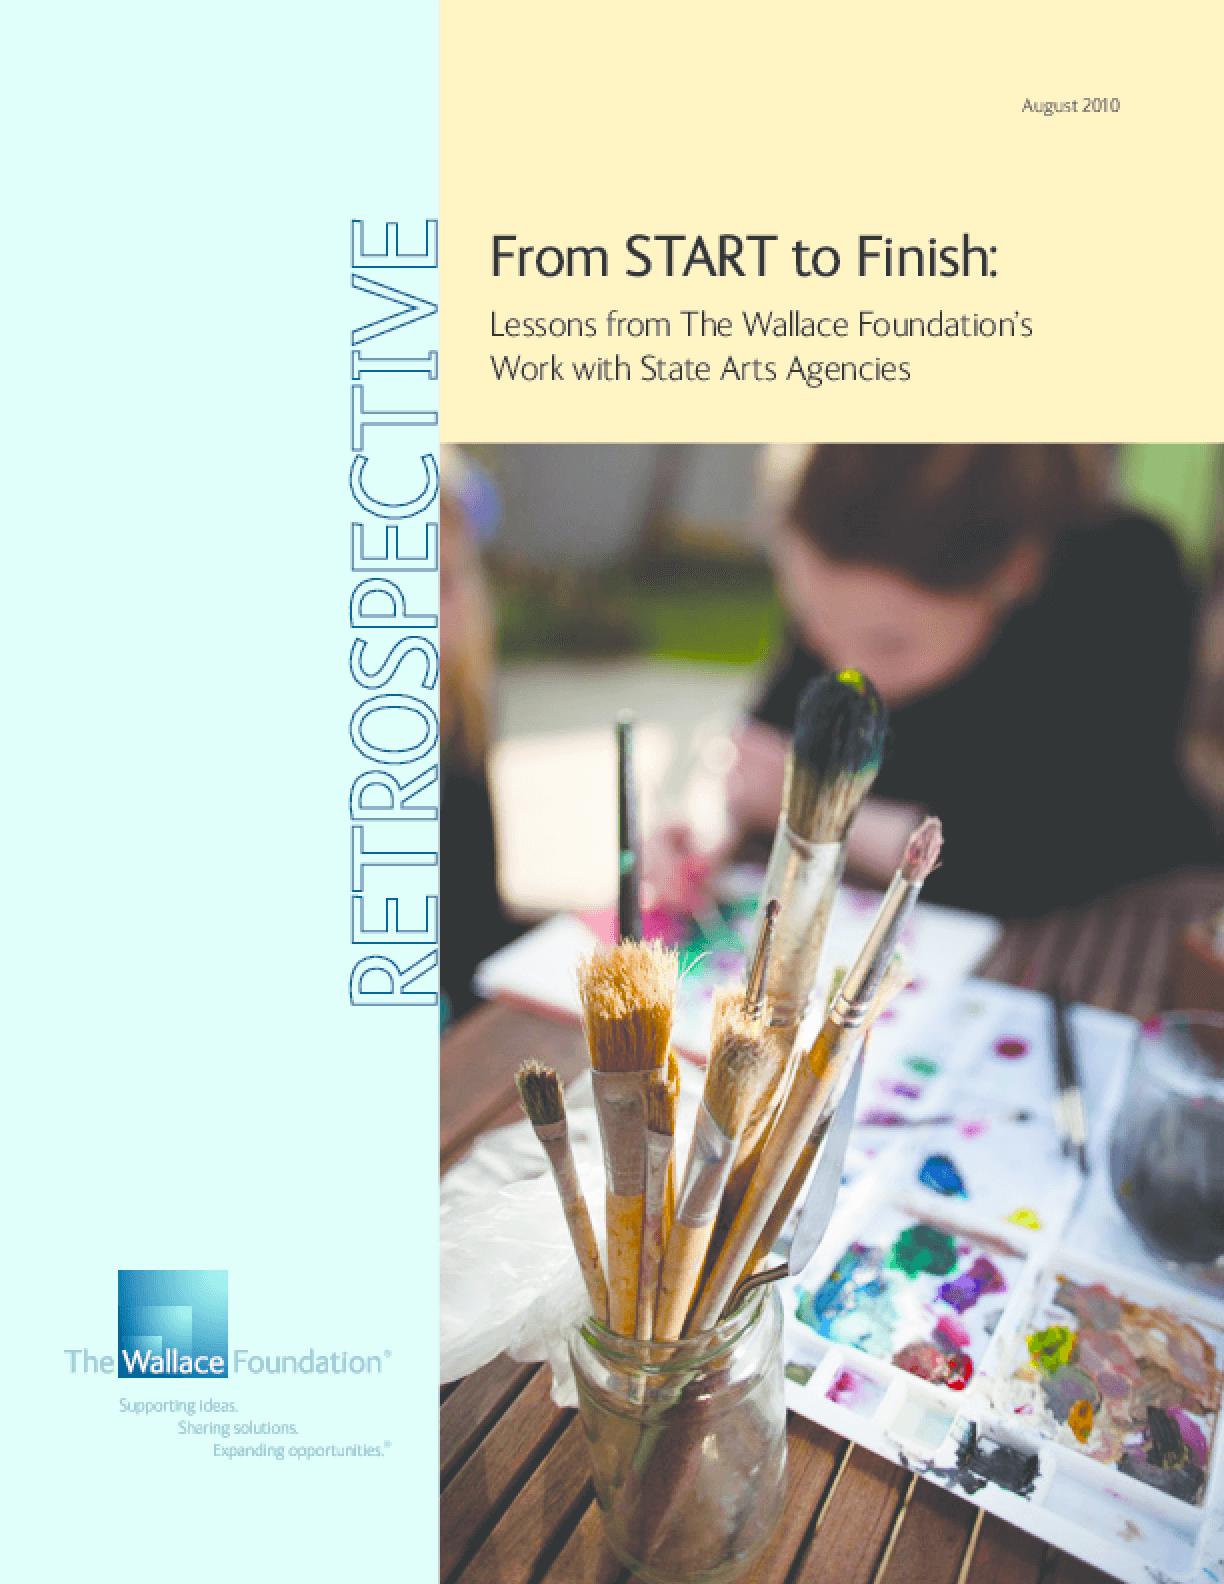 From START to Finish: Lessons From the Wallace Foundation's Work With State Arts Agencies